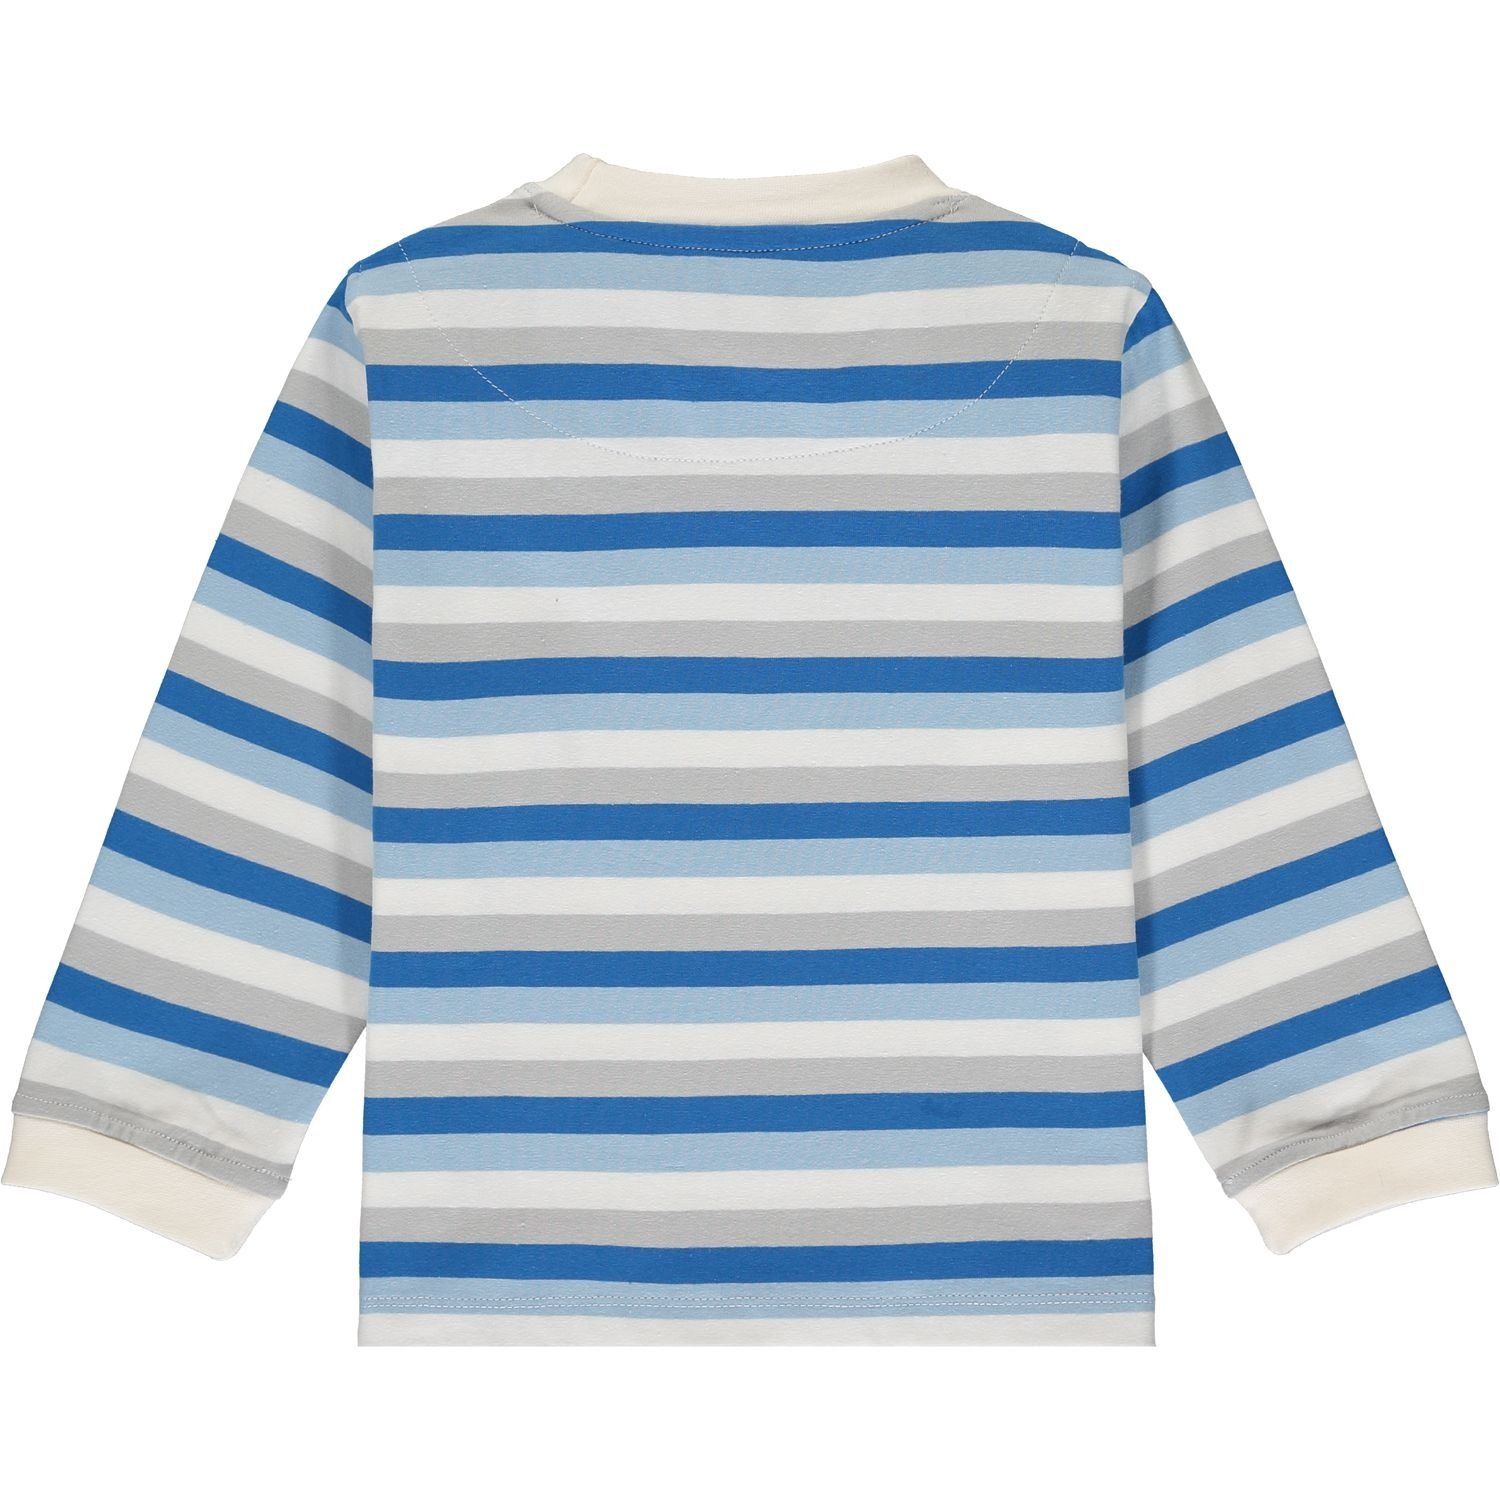 Mitch and Son Mitch & Son Gael White/Blue Stripe Compass Top